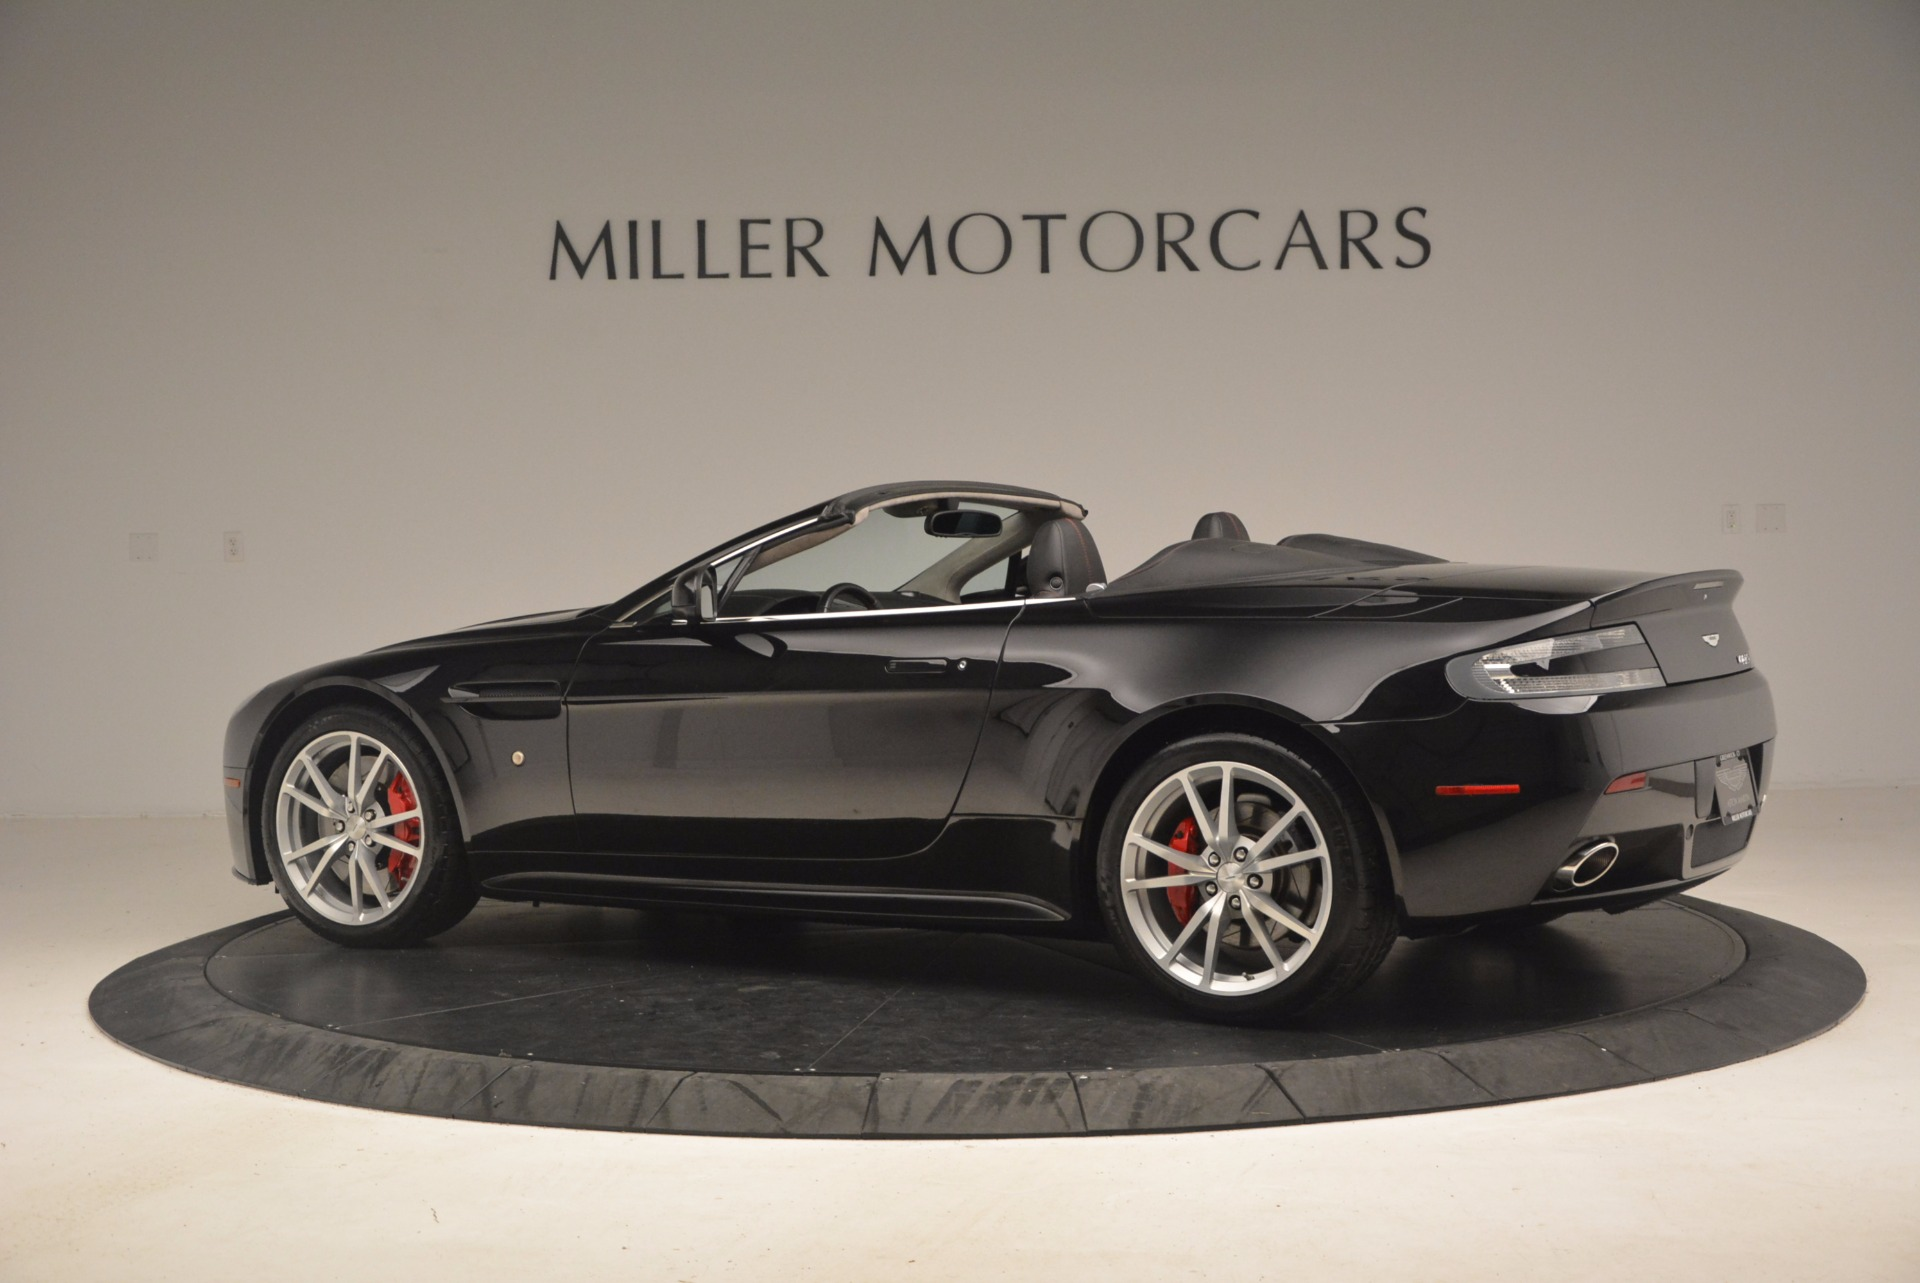 Used 2012 Aston Martin V8 Vantage S Roadster For Sale In Westport, CT 1181_p4